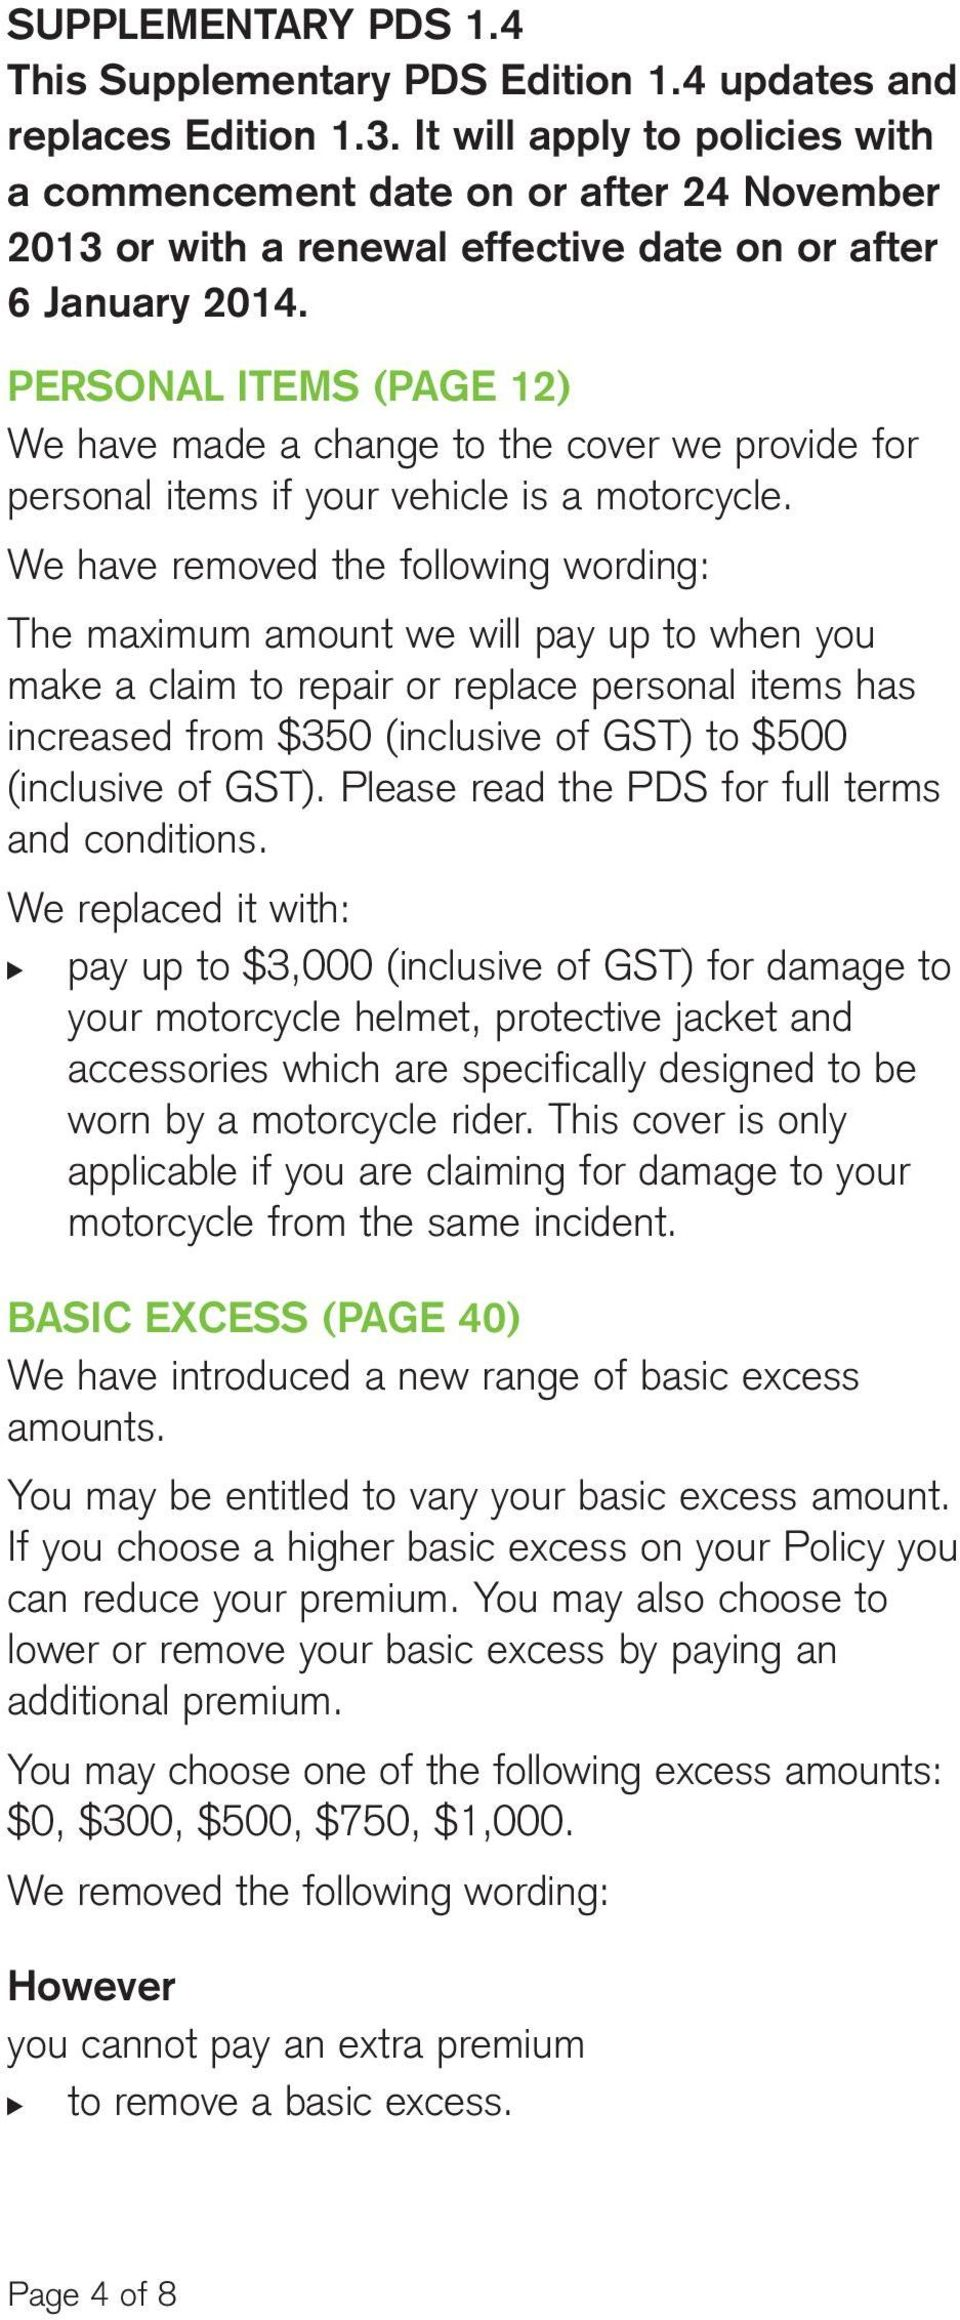 PERSONAL ITEMS (PAGE 12) We have made a change to the cover we provide for personal items if your vehicle is a motorcycle.